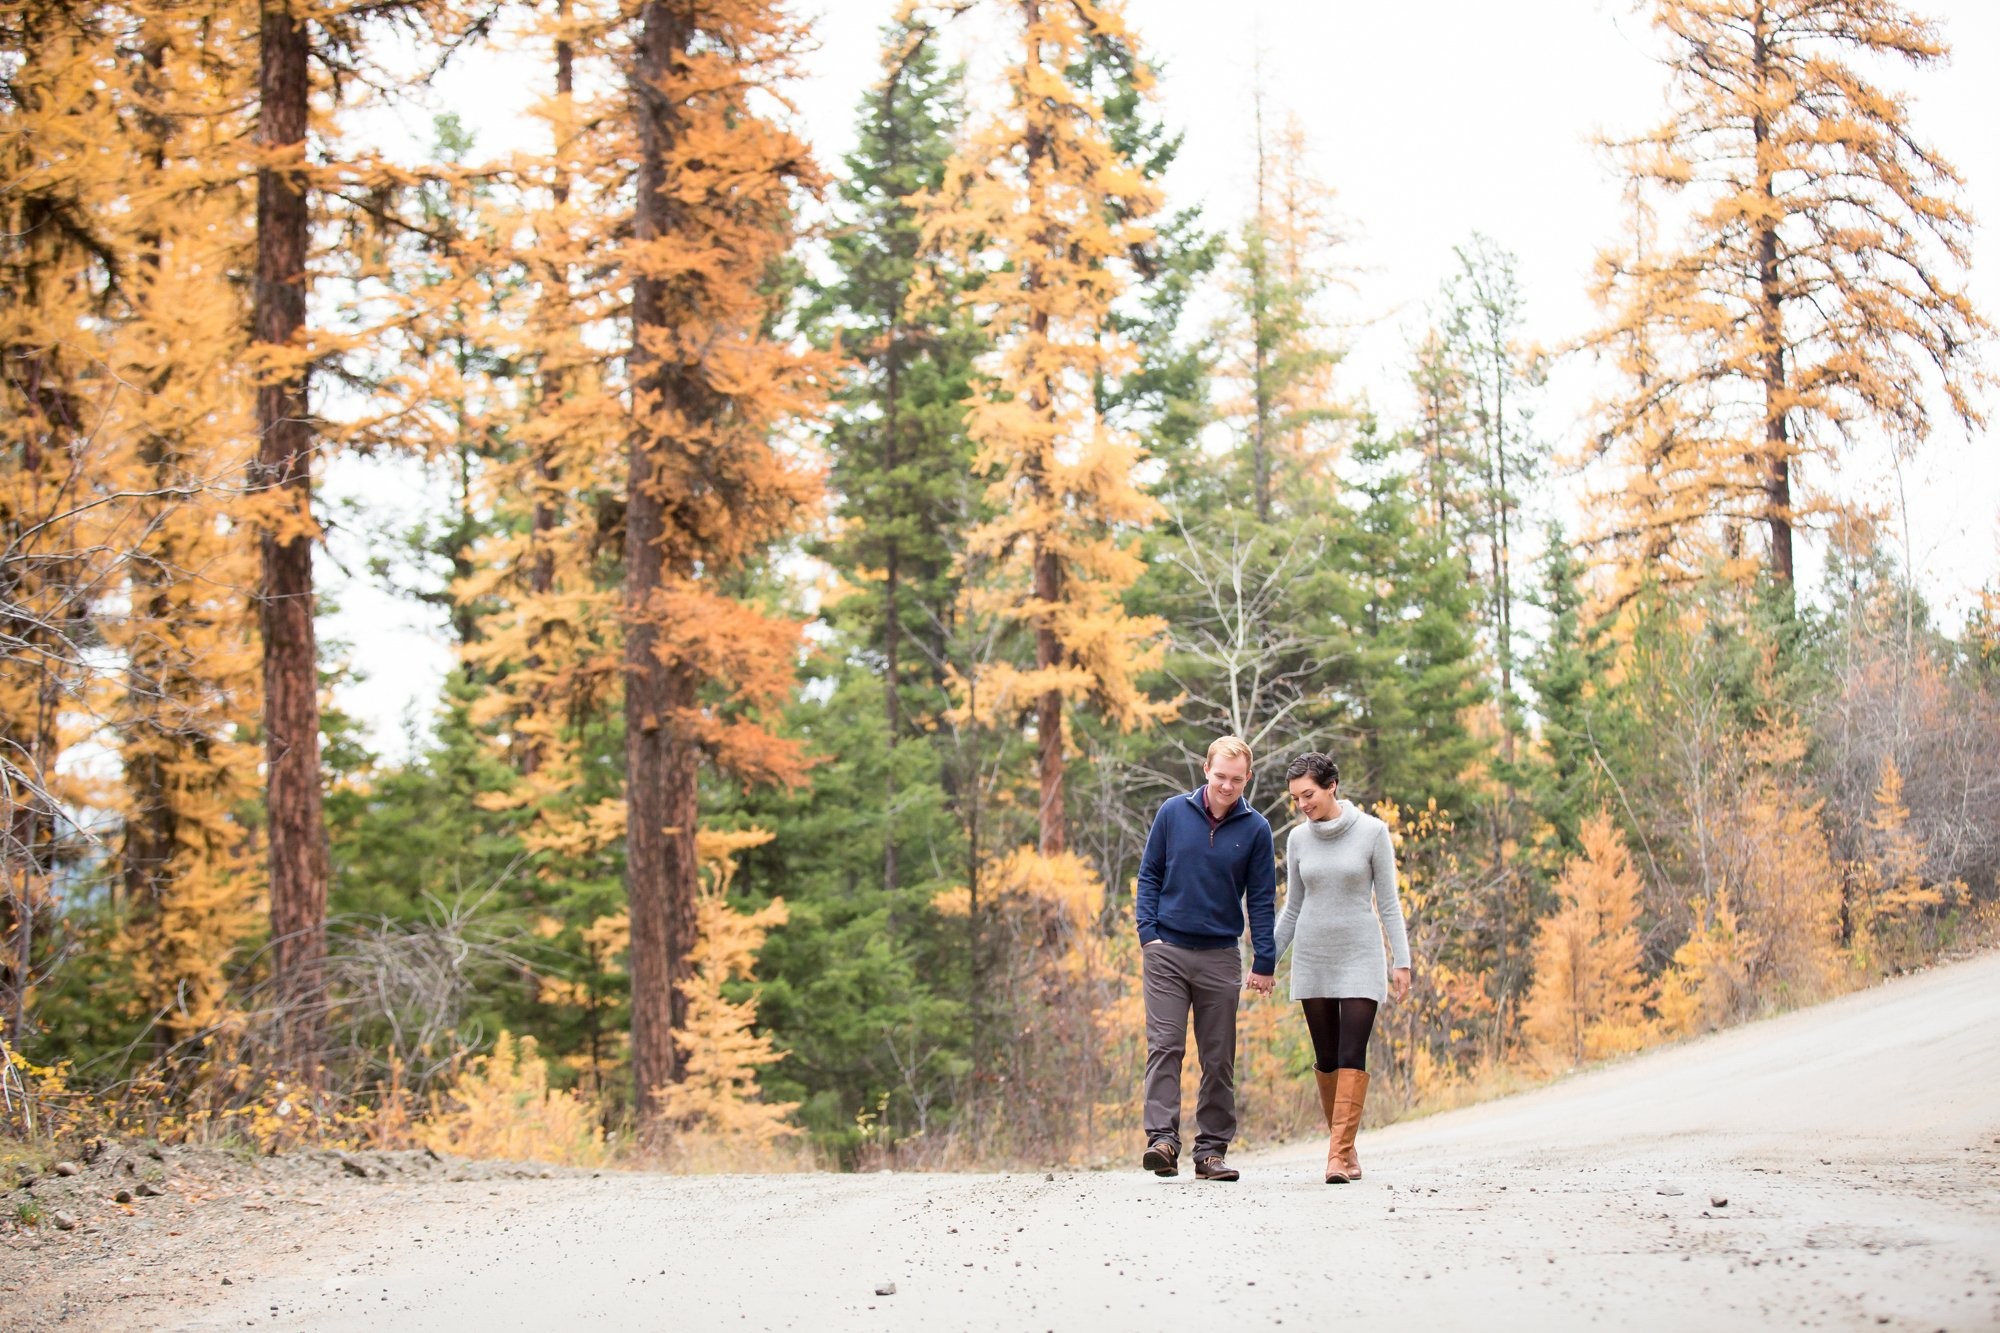 A couple walking hand in hand in the fall trees